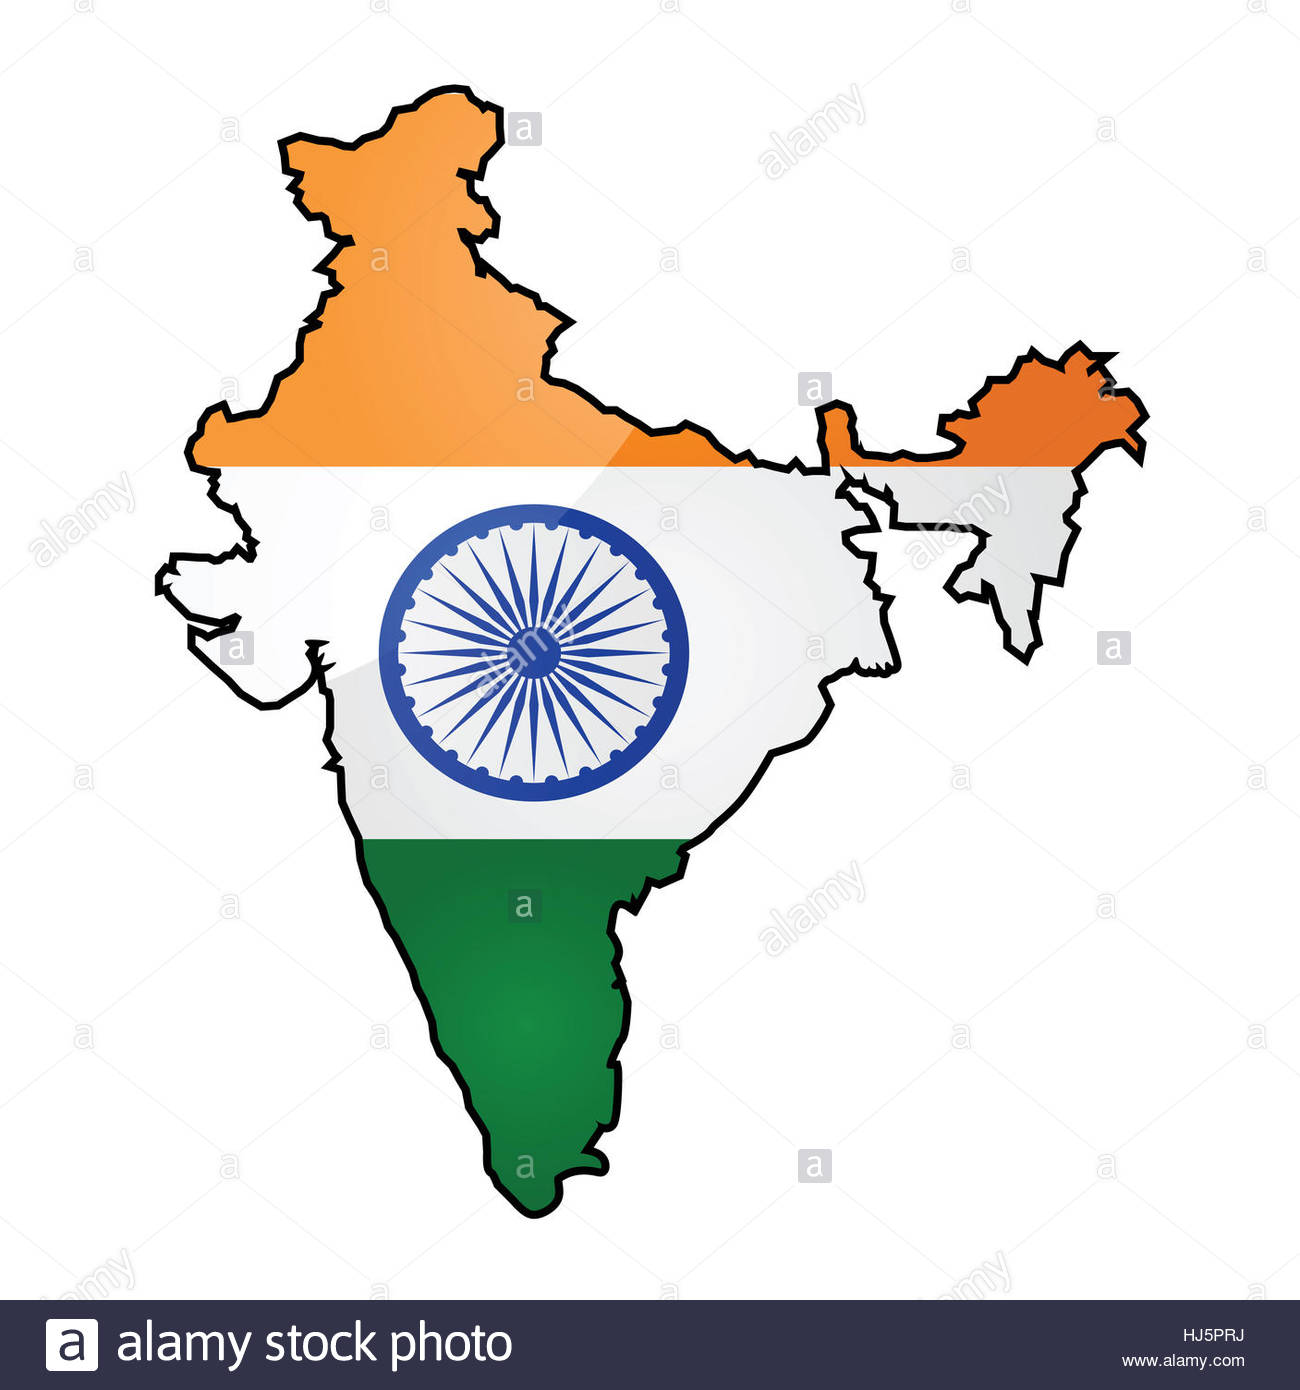 1300x1390 Graphic, Asia, India, Illustration, Flag, South, Bright, Shiny